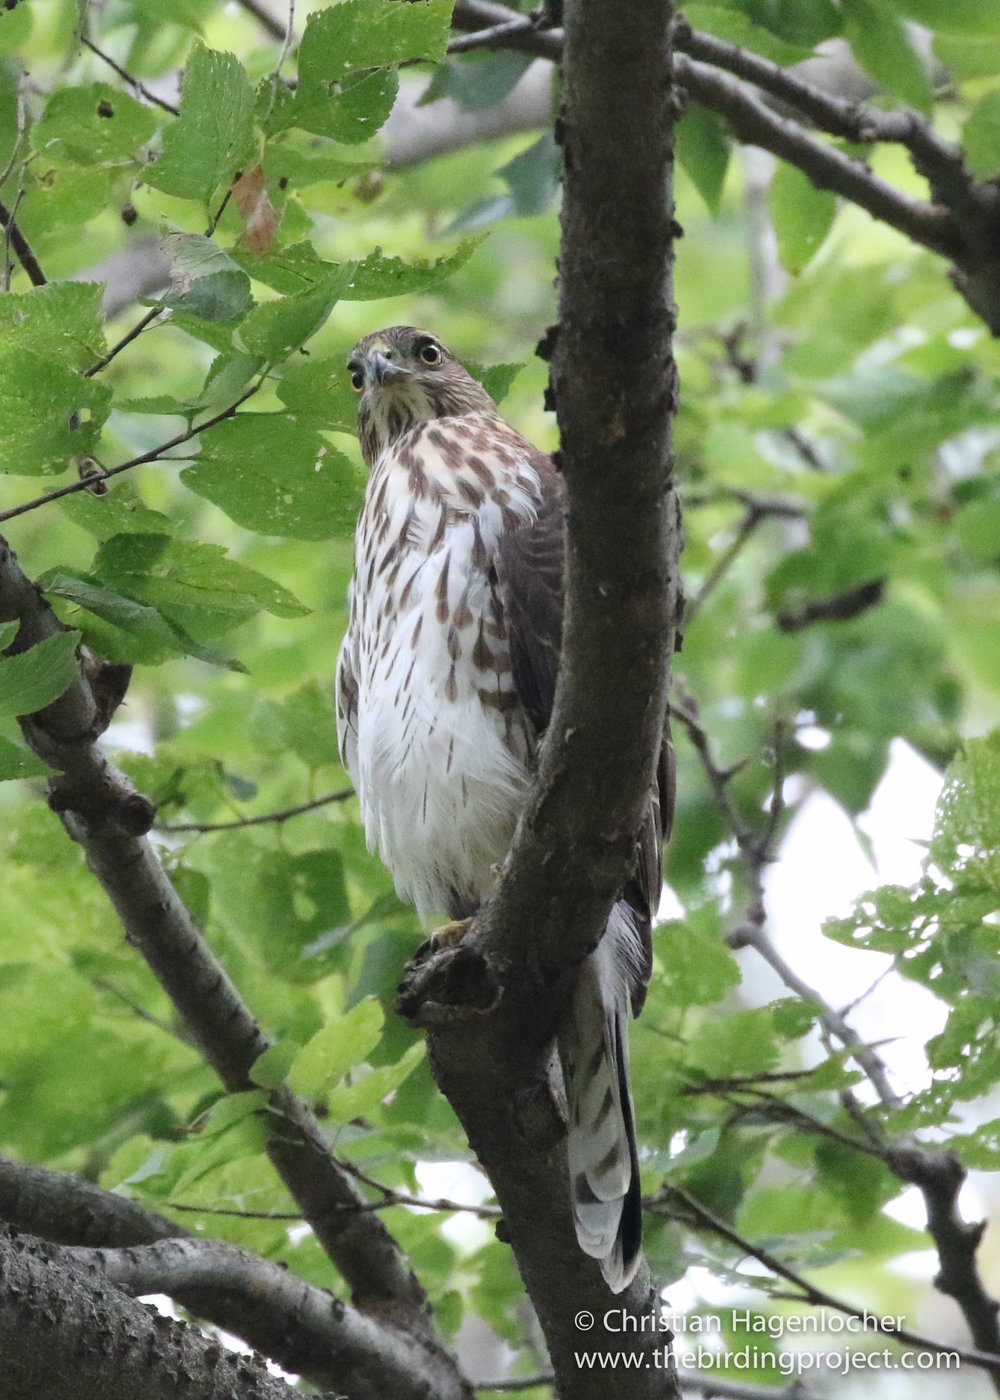 A young male Cooper's Hawk keeps a watchful eye over the stream, full of birds moments before.